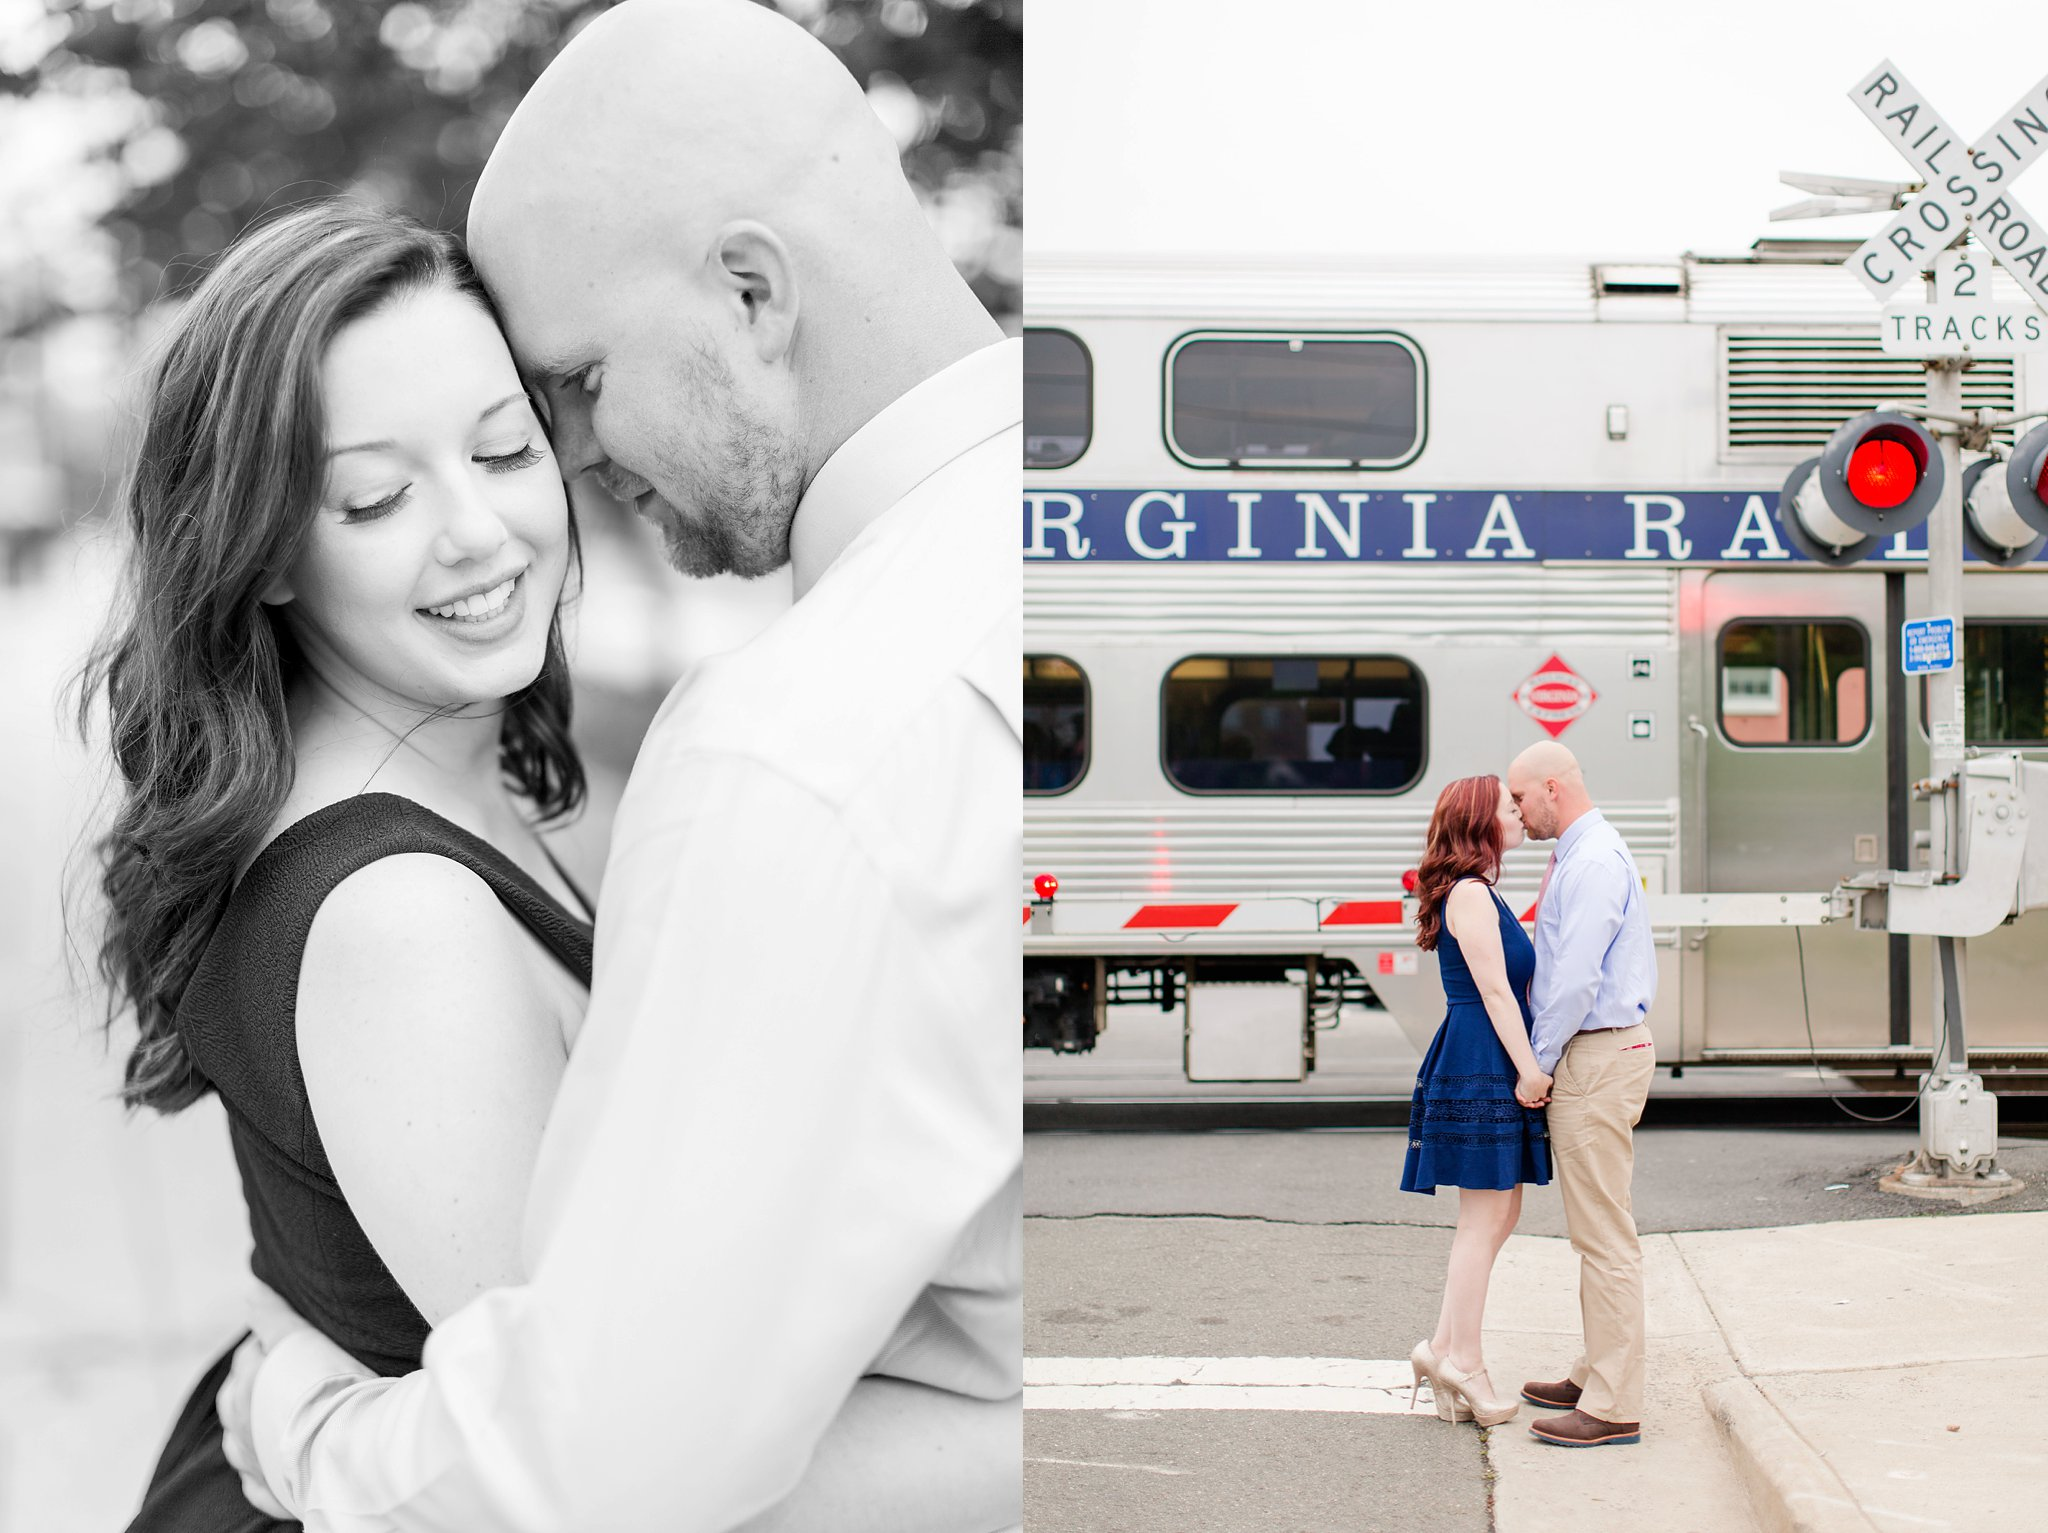 Old Town Manassas Battlefield Engagement Photos Virginia Wedding Photographer Jessica & Jason-32.jpg